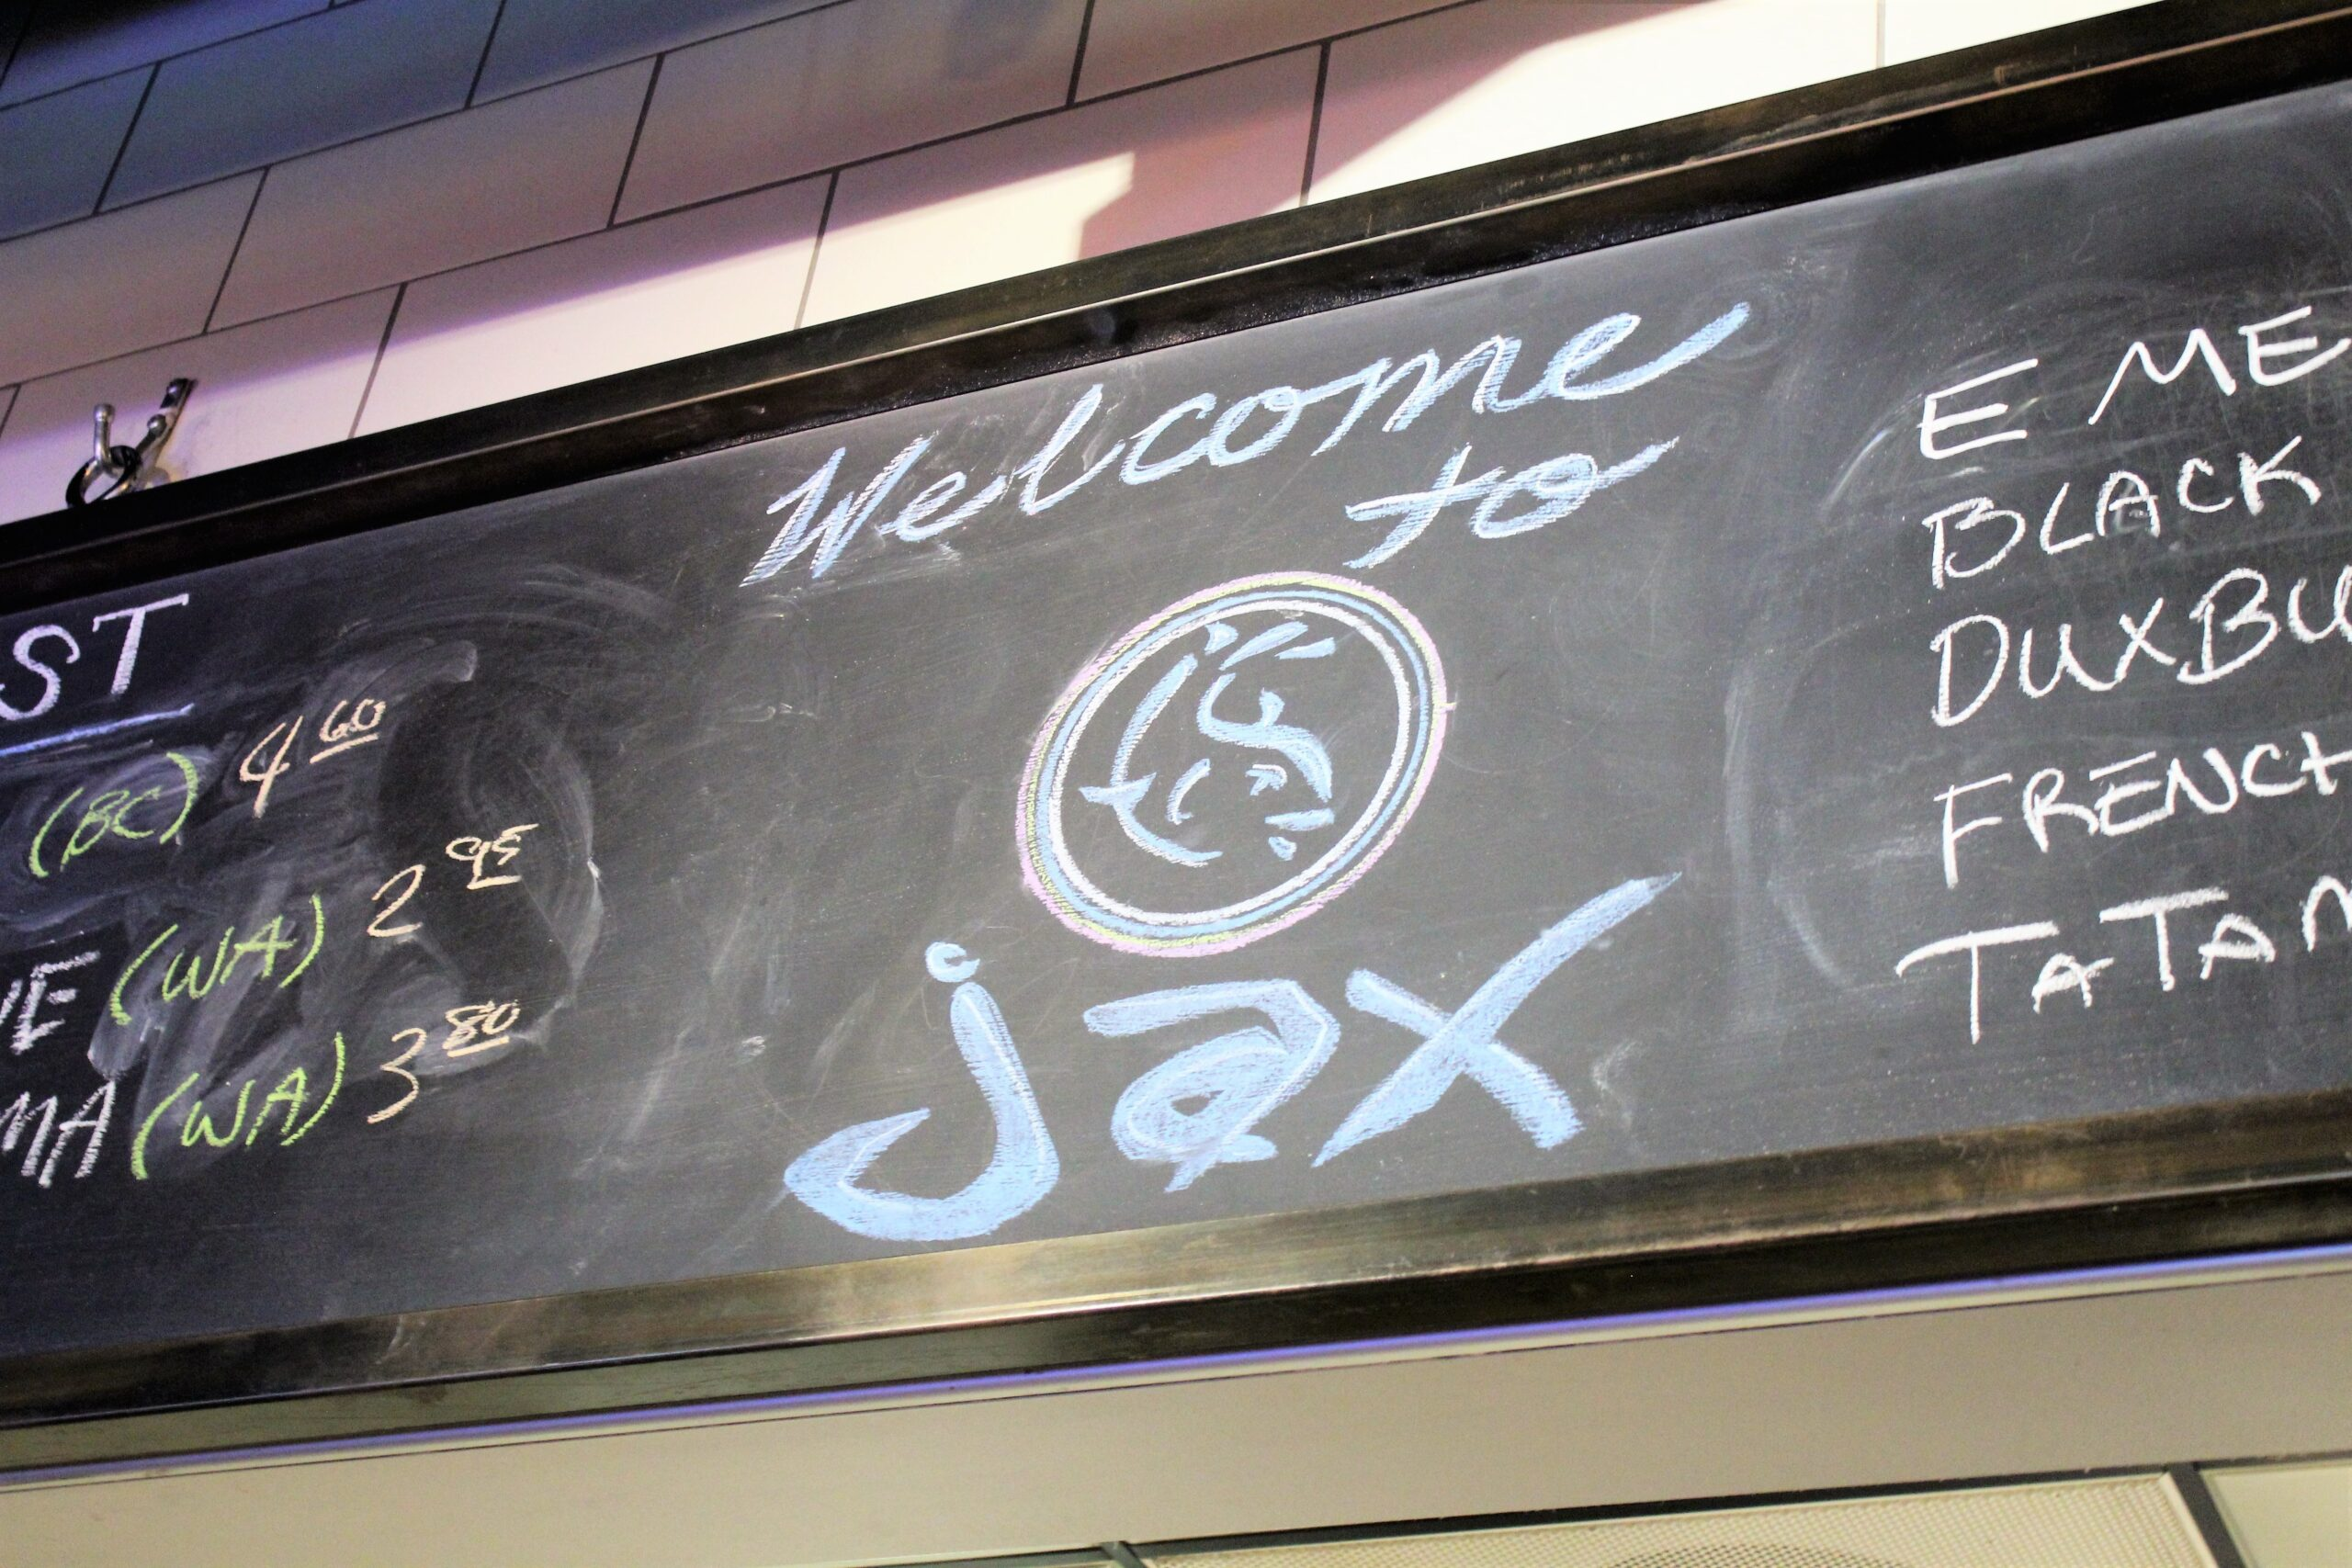 Jax fish house oyster bar celebrates the longest day to for Jax fish house menu